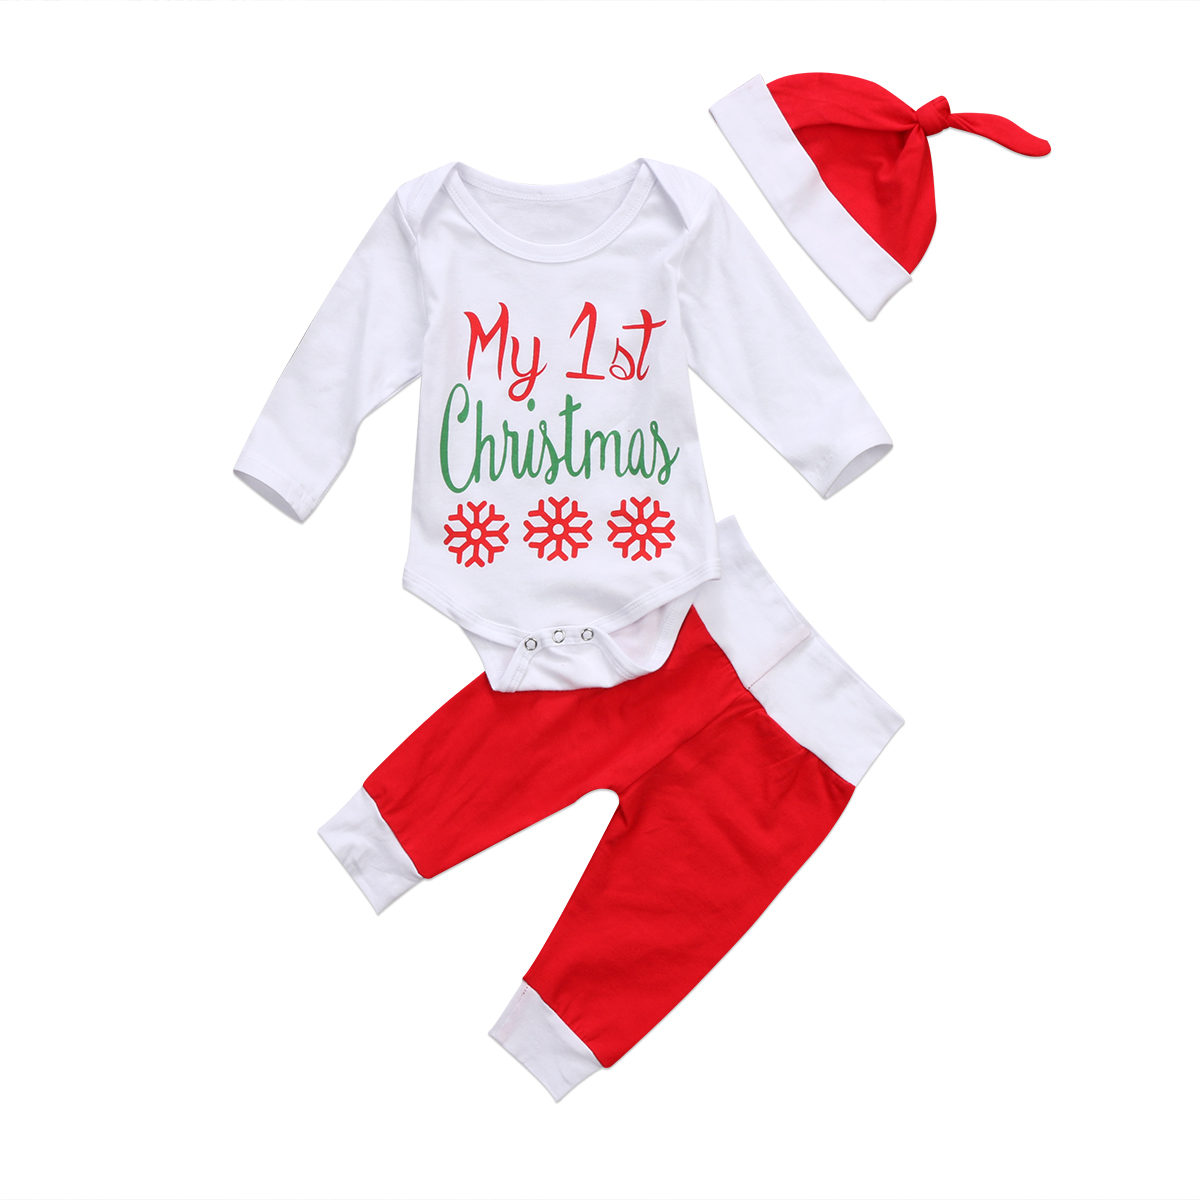 My 1st Christmas Newborn Baby Boy Girl Xmas Clothes Tops Romper Pants Outfit Set xmas santa claus 1st brown top baby girl pettiskirt outfit 1 8y mapsa0036